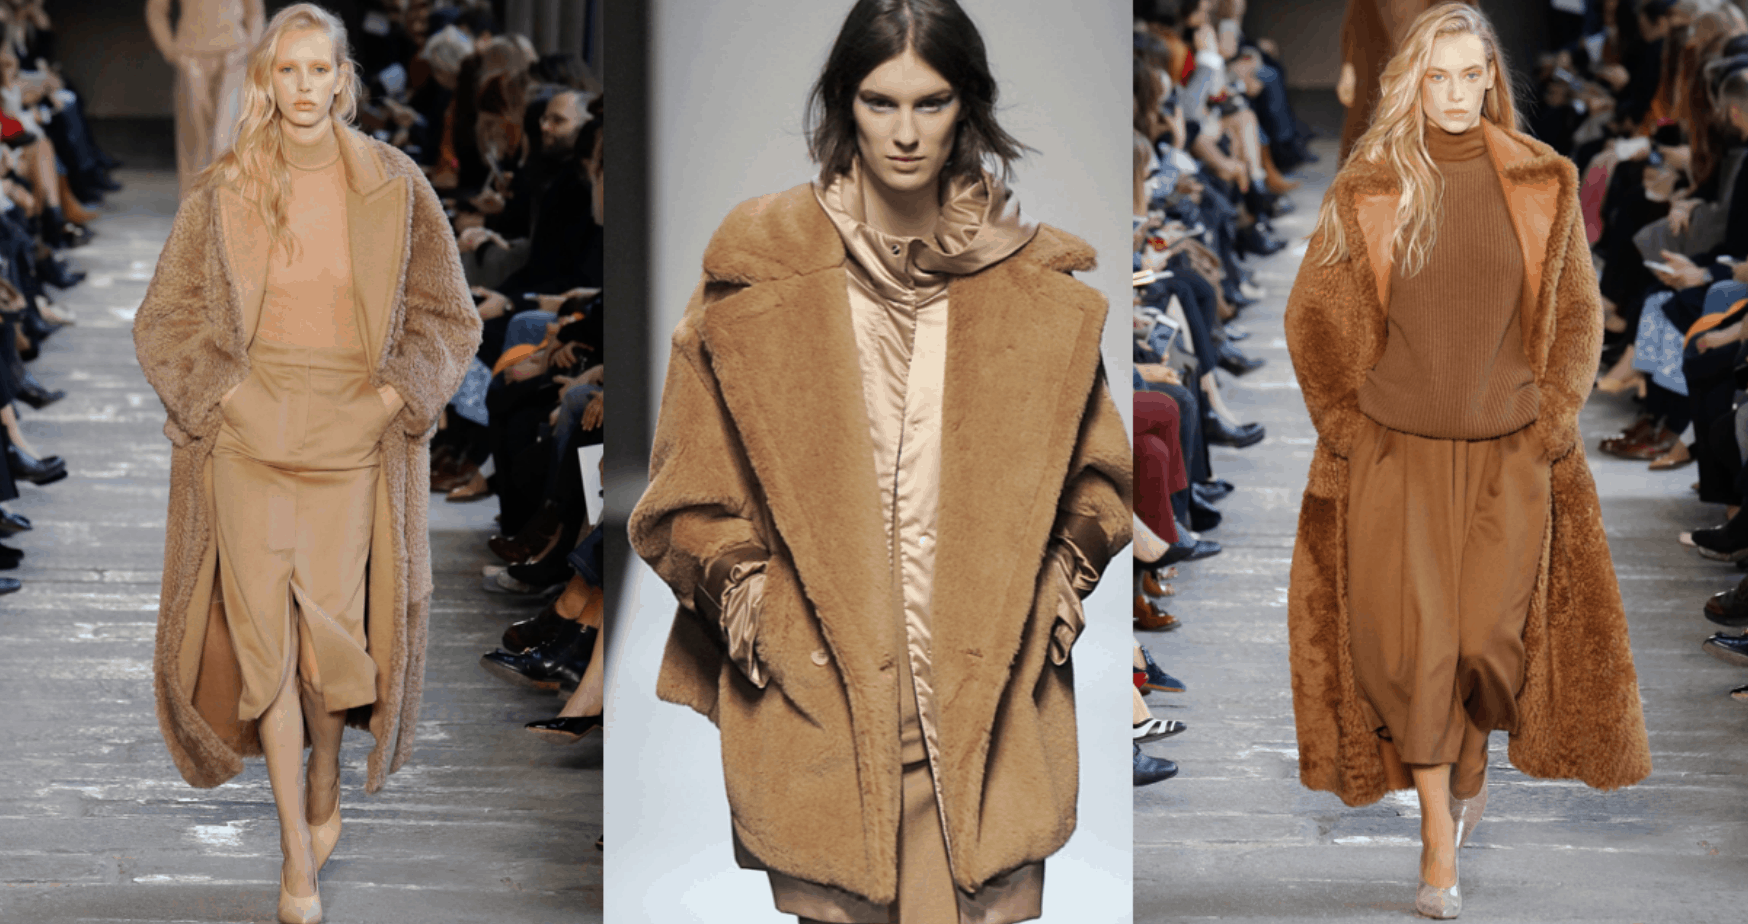 This comfy coat has been one of the most worn trends of the season. Celebs all over are wearing the warm teddy coat.